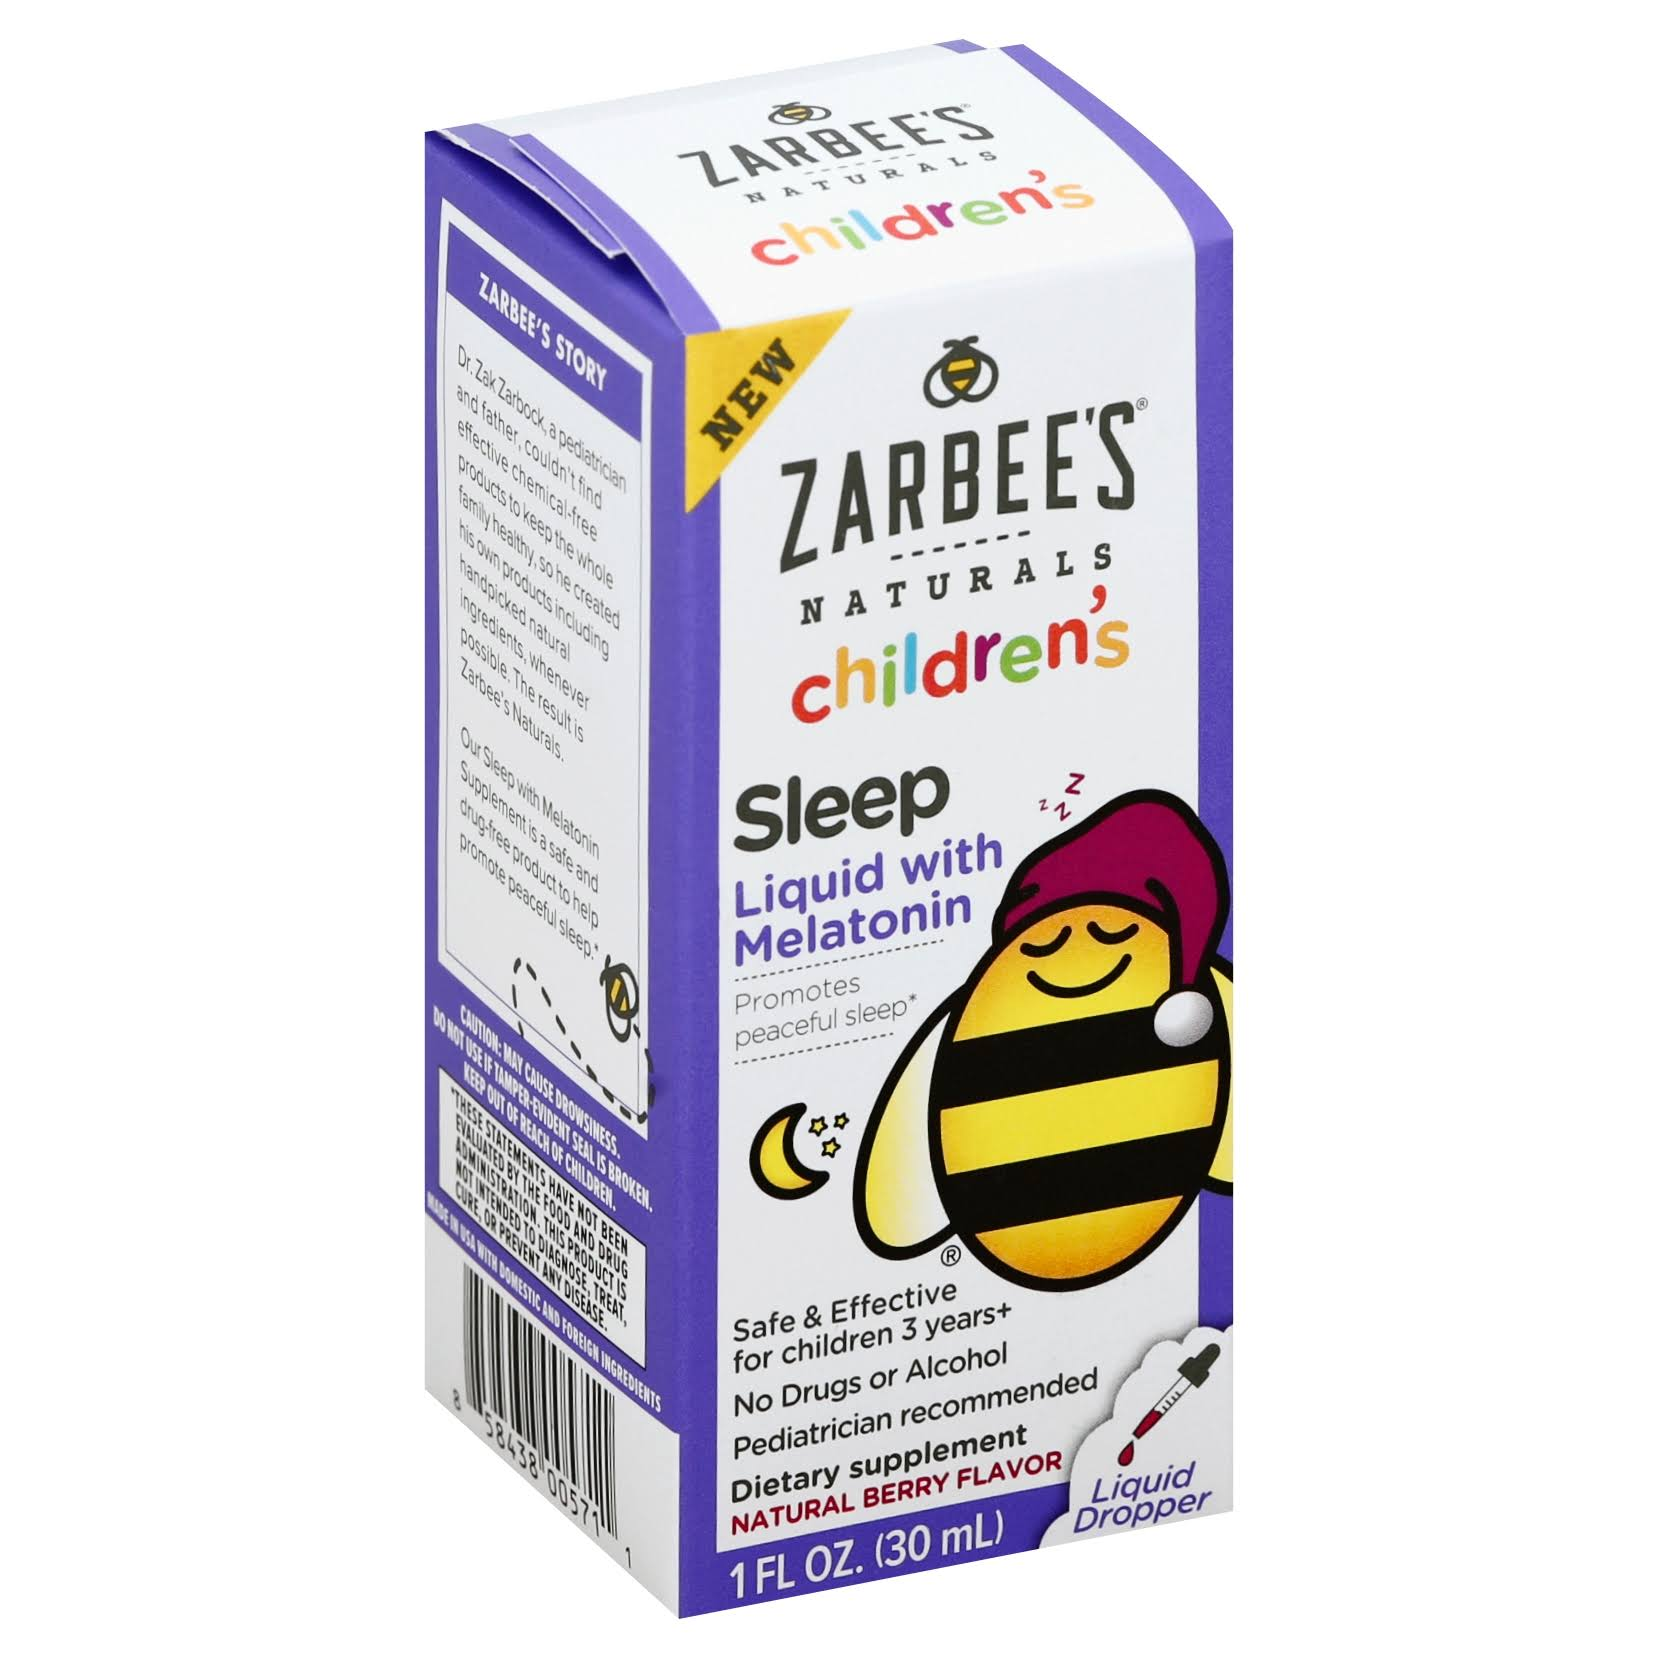 Zarbee's Naturals Children's Sleep Liquid - Berry Flavor, 1oz